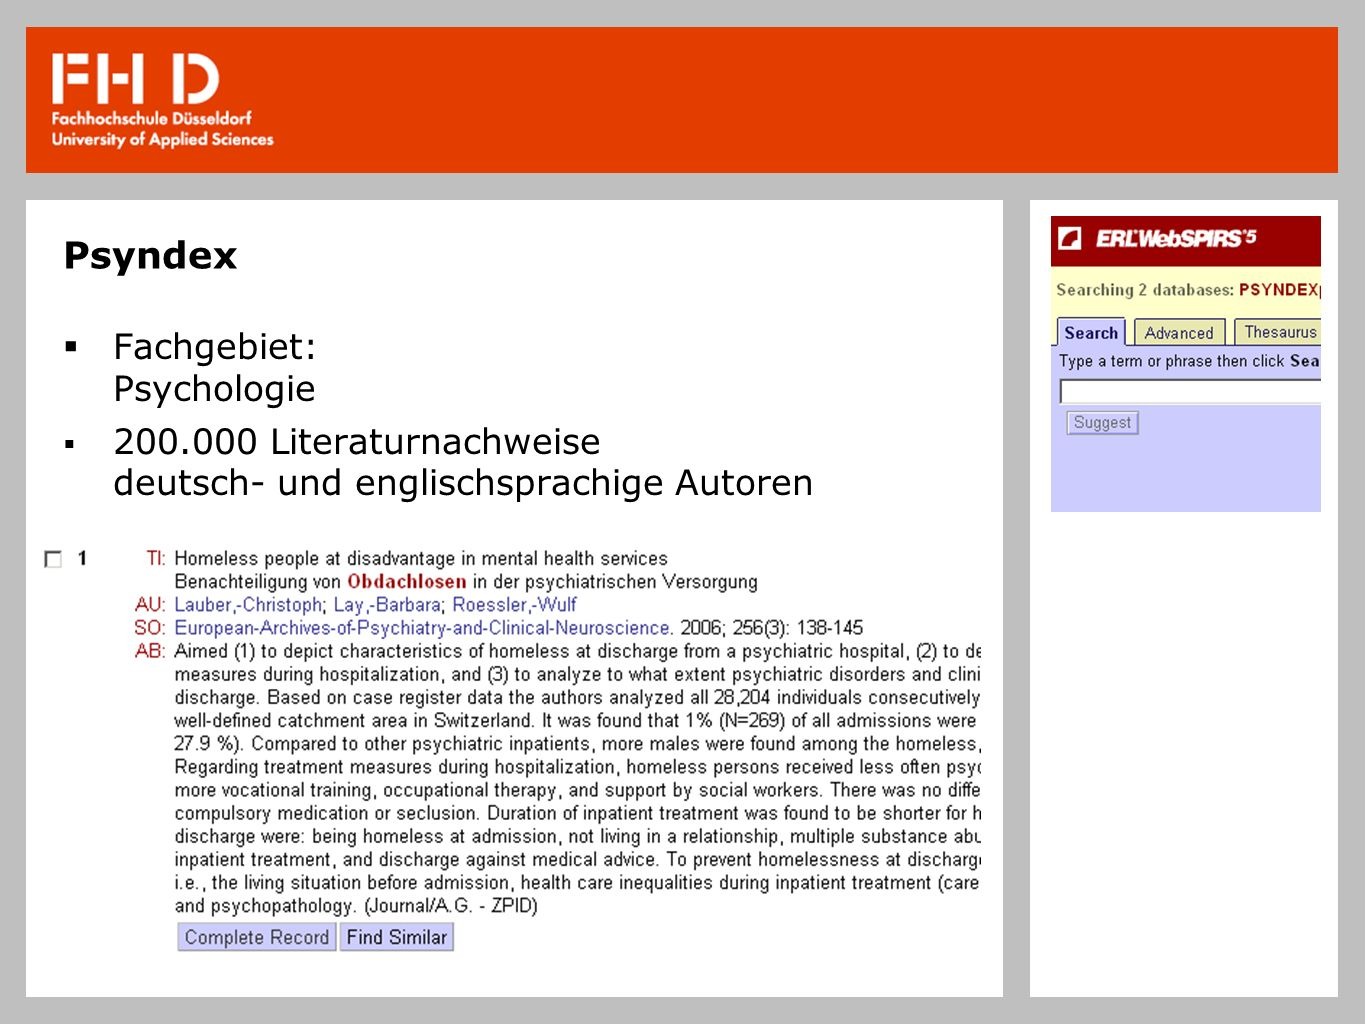 Psyndex Fachgebiet: Psychologie